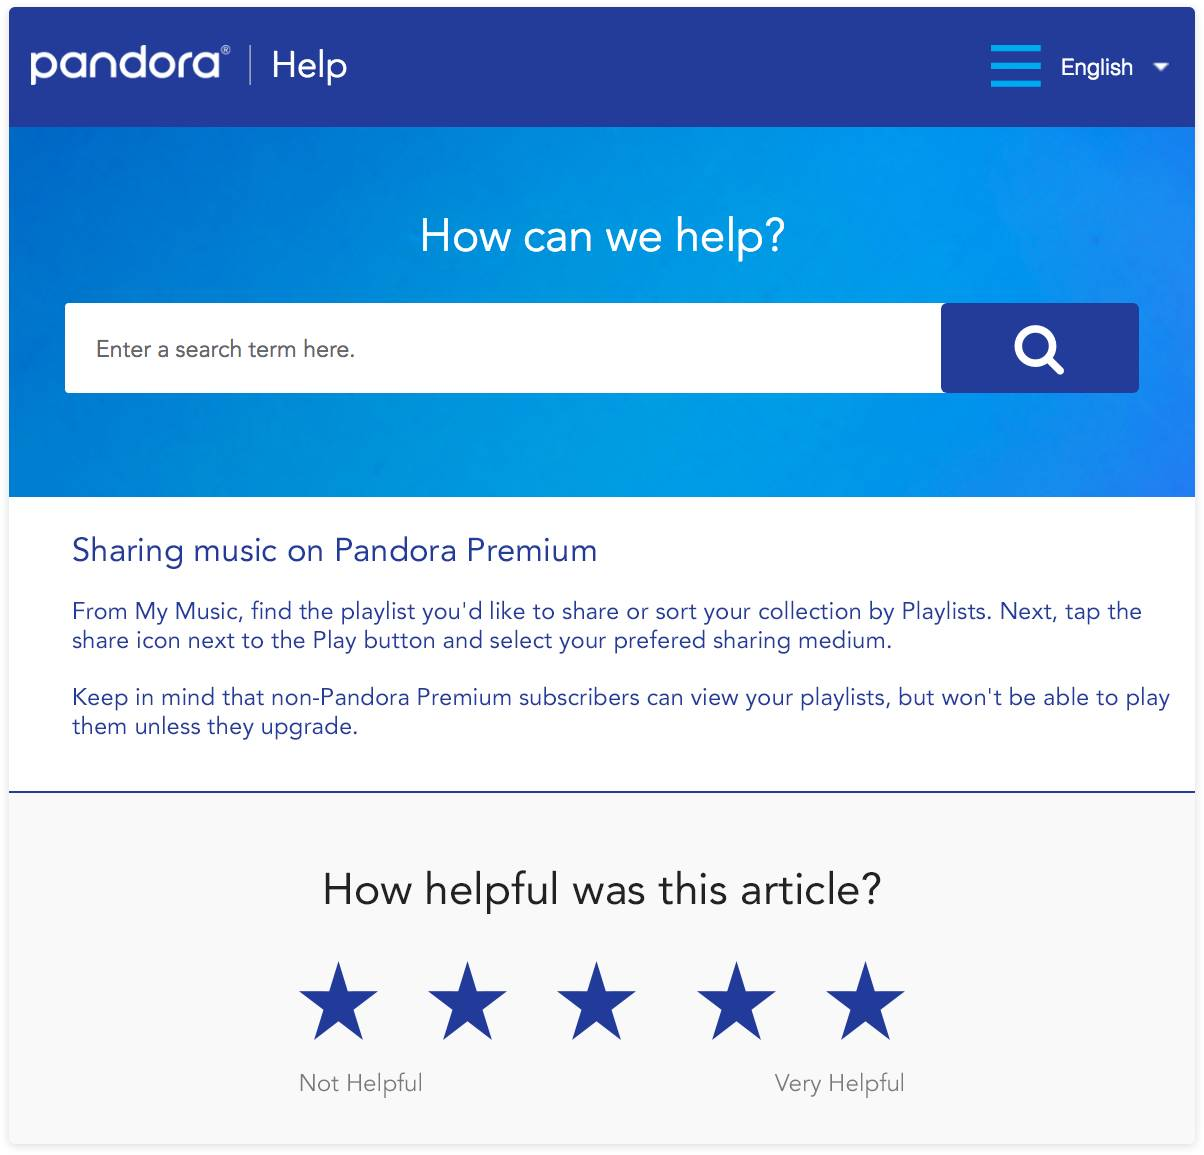 Pandora knowledge base article survey